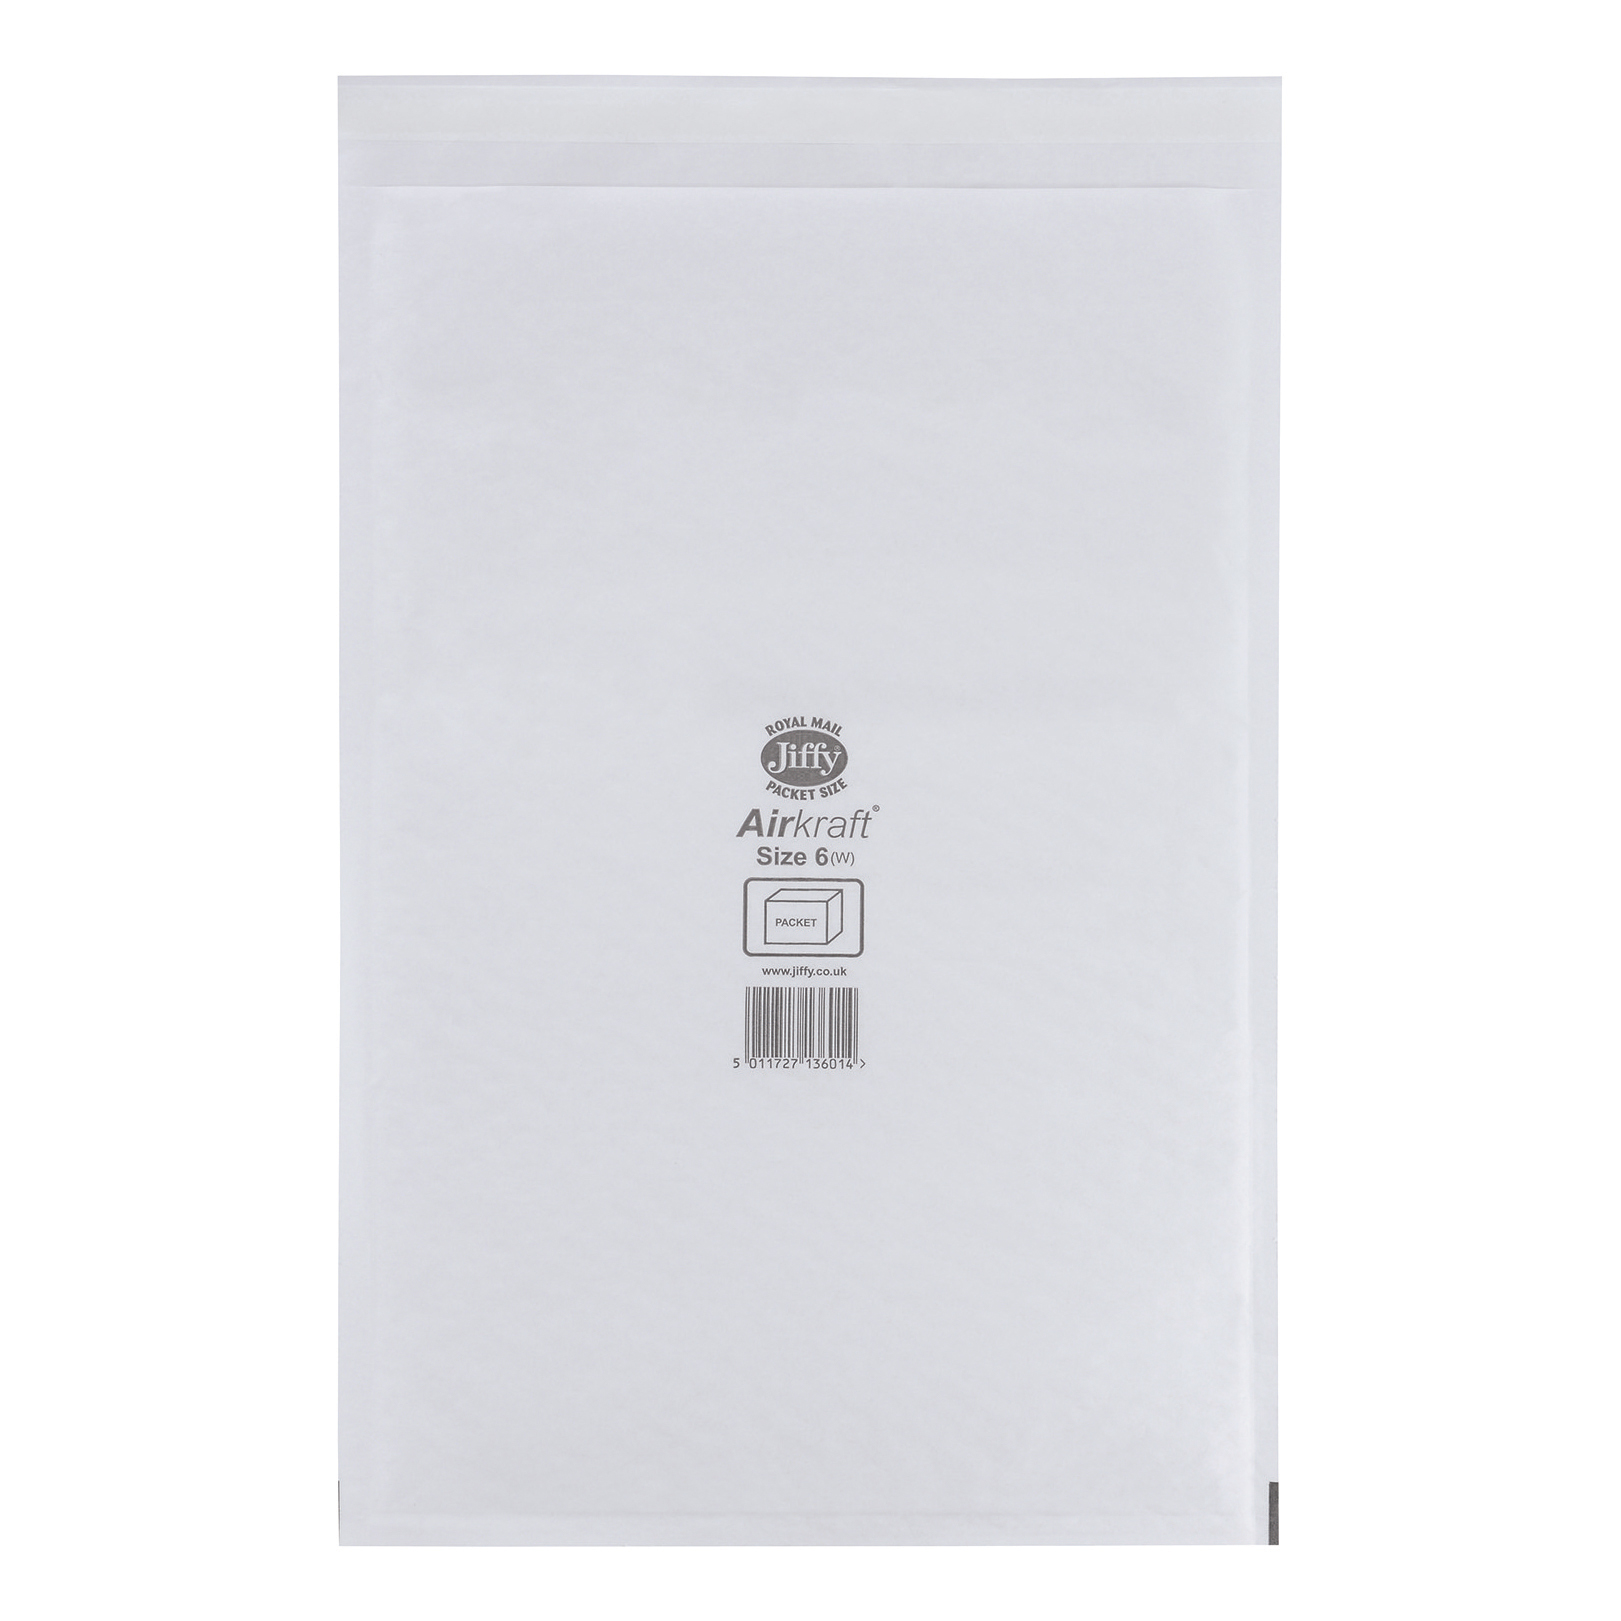 Padded Bags & Envelopes Jiffy Airkraft Bag Bubble-lined Size 6 Peel and Seal 290x445mm White Ref JL-6 [Pack 50]